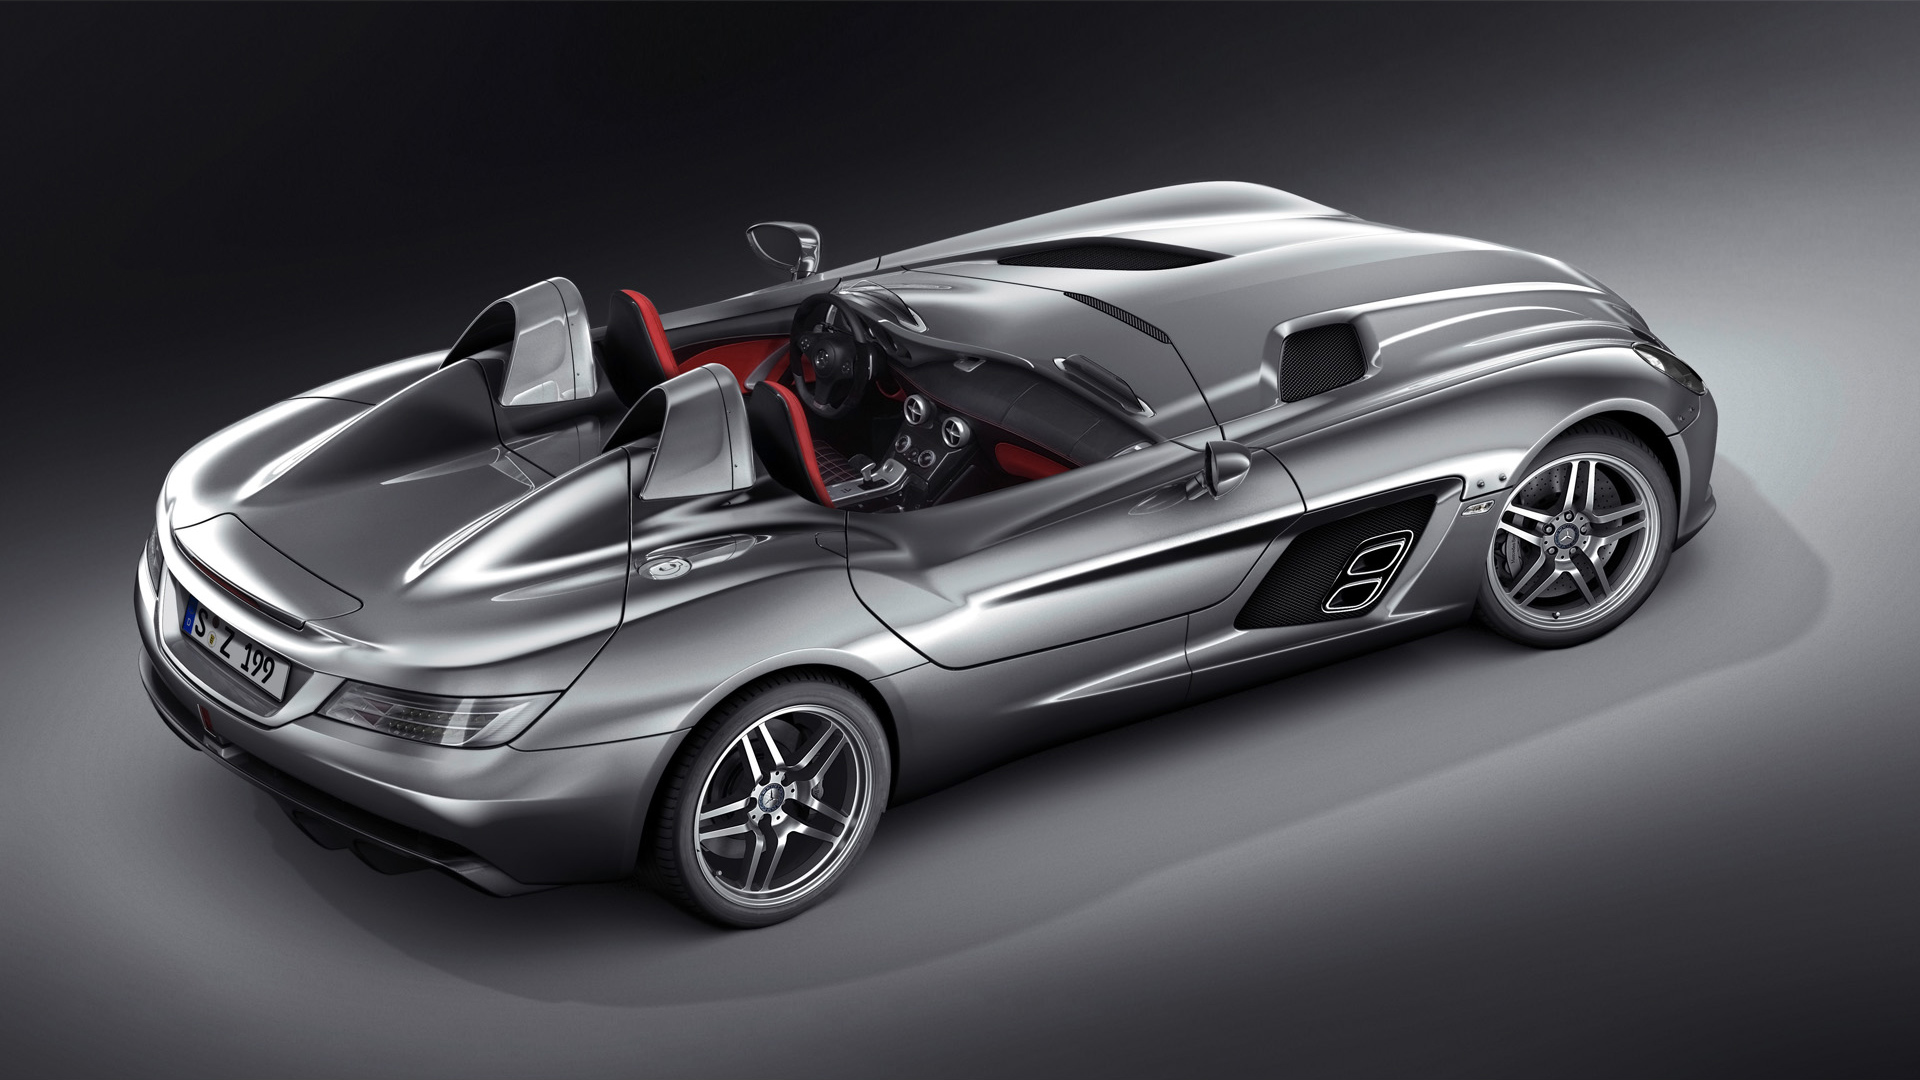 Mercedes Benz SLR McLaren Stirling Moss 1080p 568.4 Kb